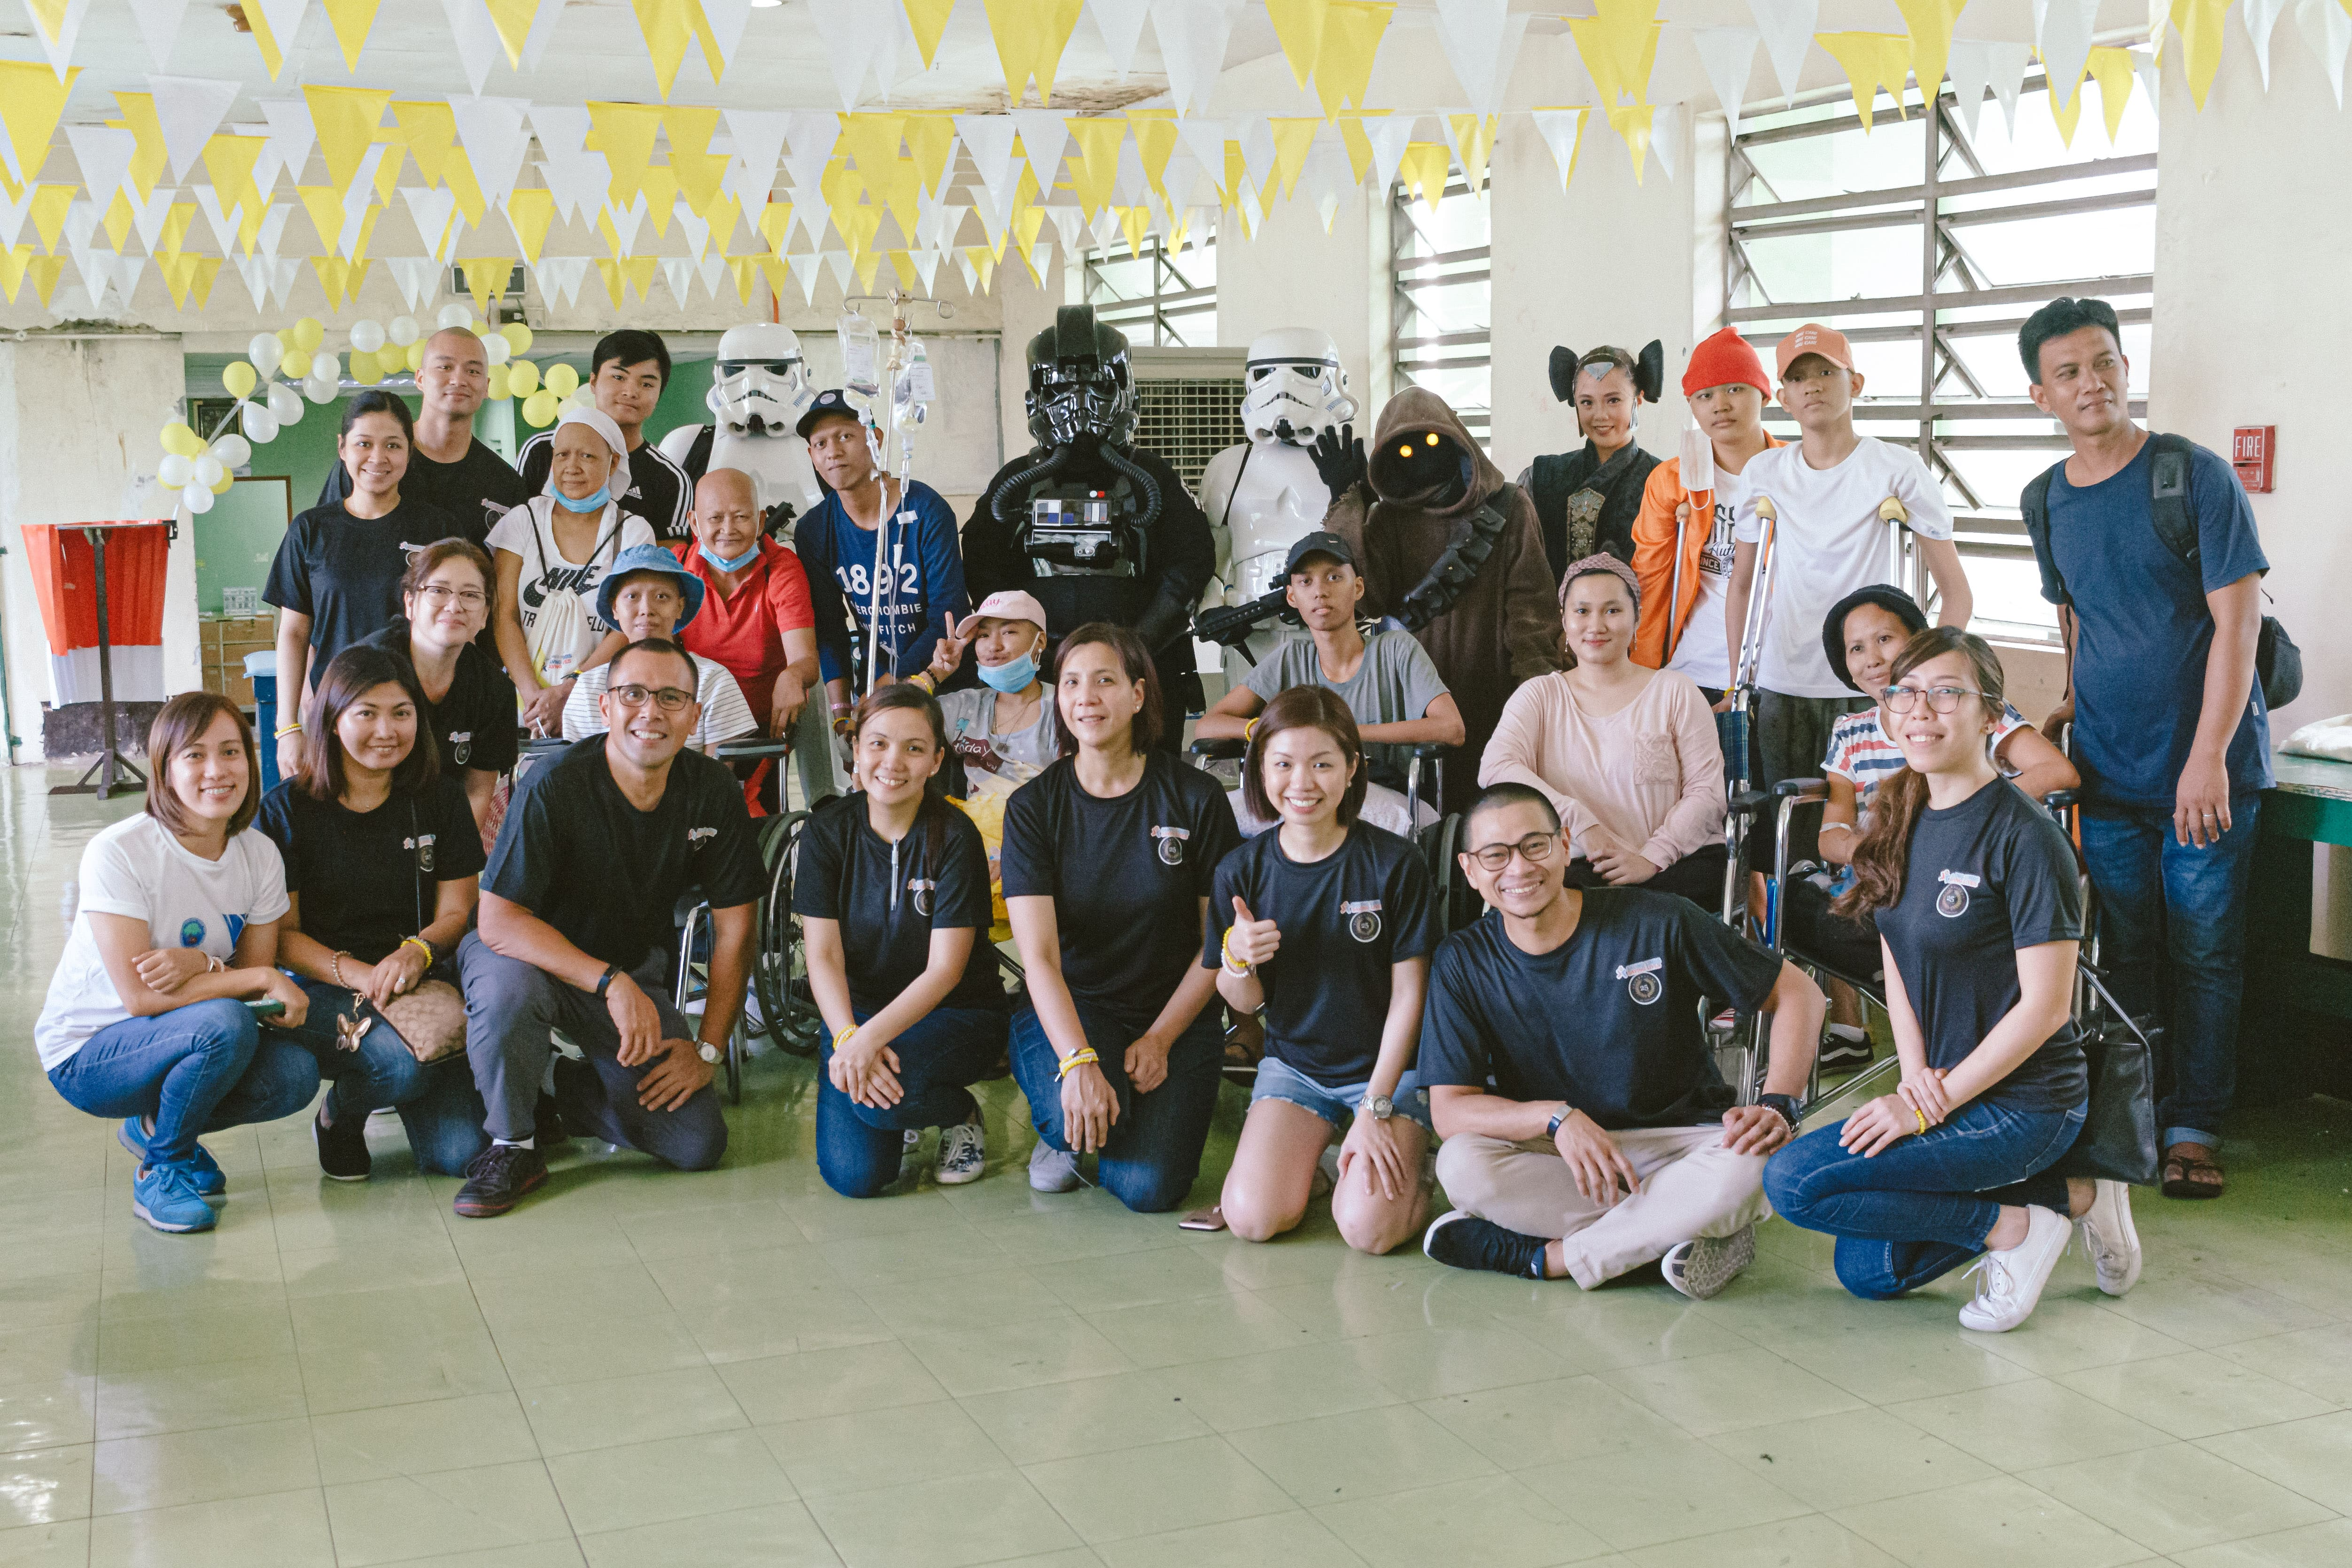 Make-A-Wish Philippines volunteers and partners including doctors and wish granters